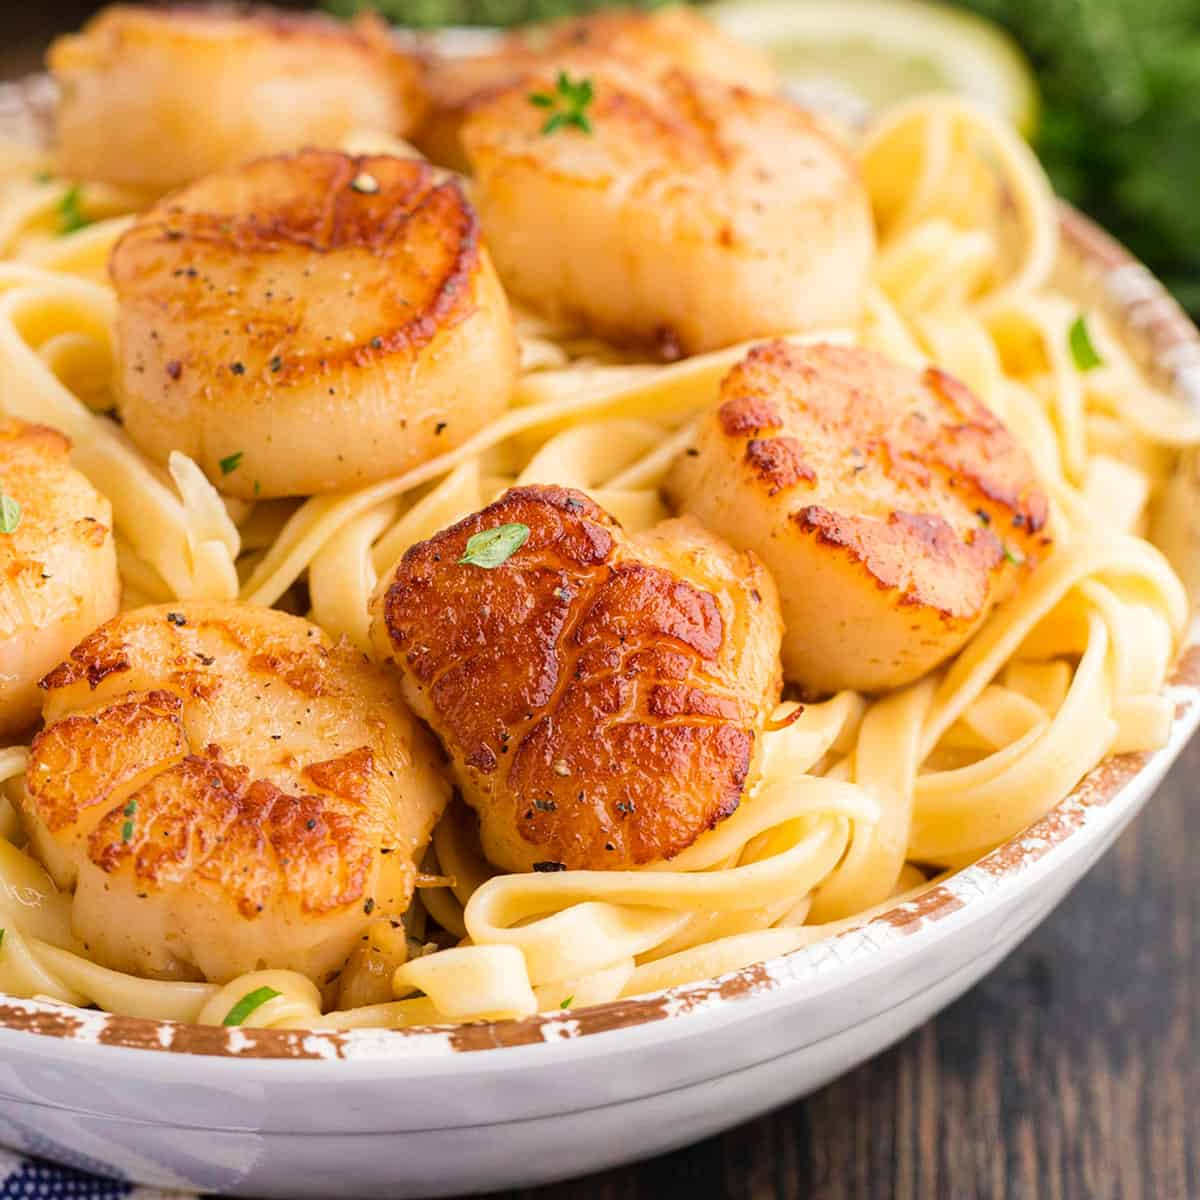 A bowl of seared sea scallops on a bed of pasta.